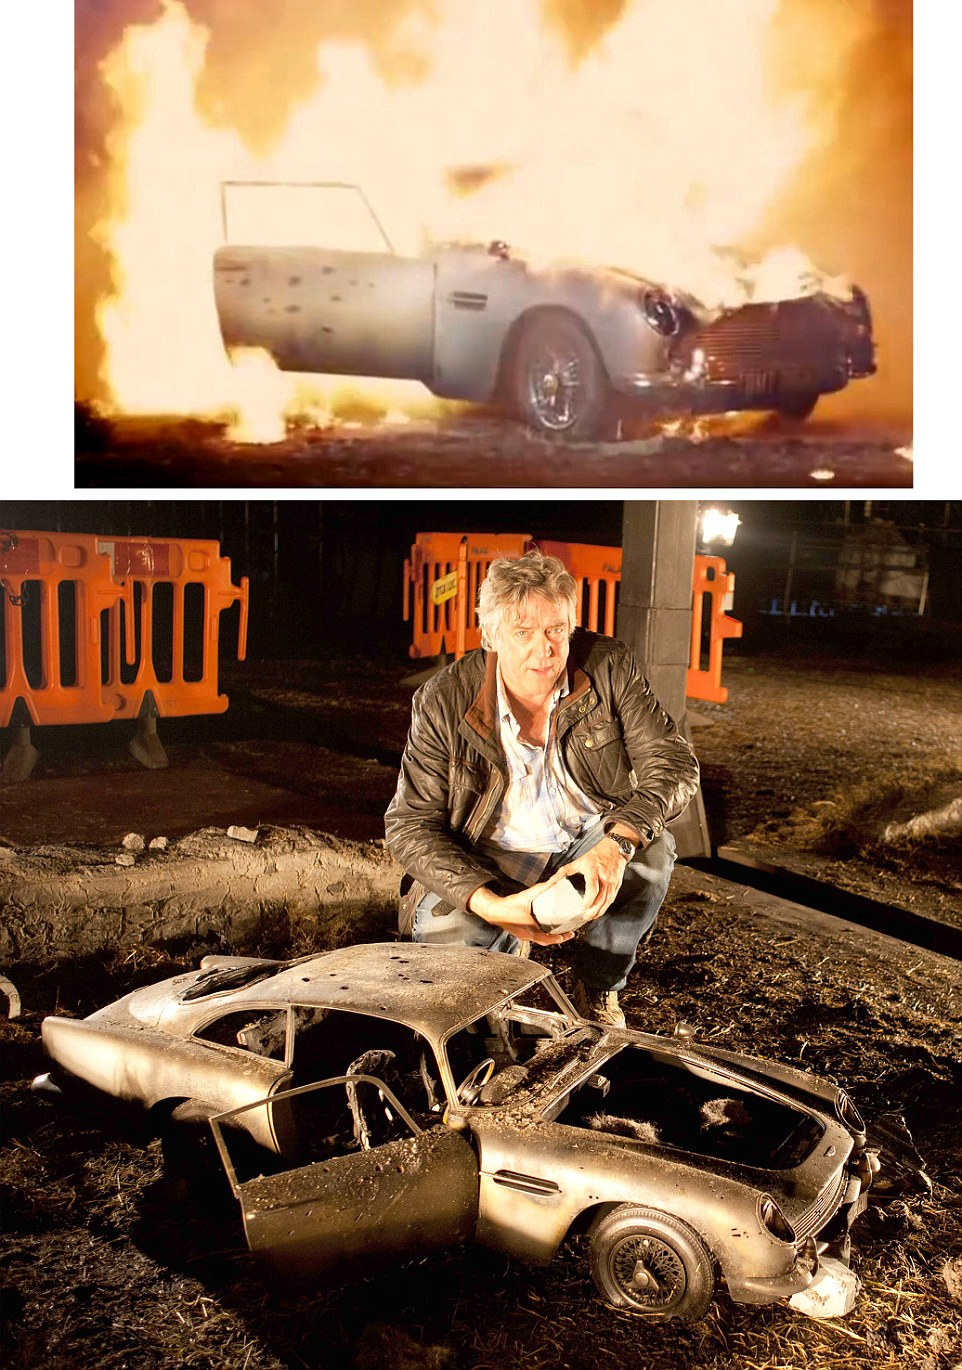 Steve Begg - Special Effects designer - with 3rd scale miniature Aston Martin DB5 and TOP the same model exploded for Skyfall (2012) - as the film sees an explosion destroy James Bond's prized Aston Martin DB5